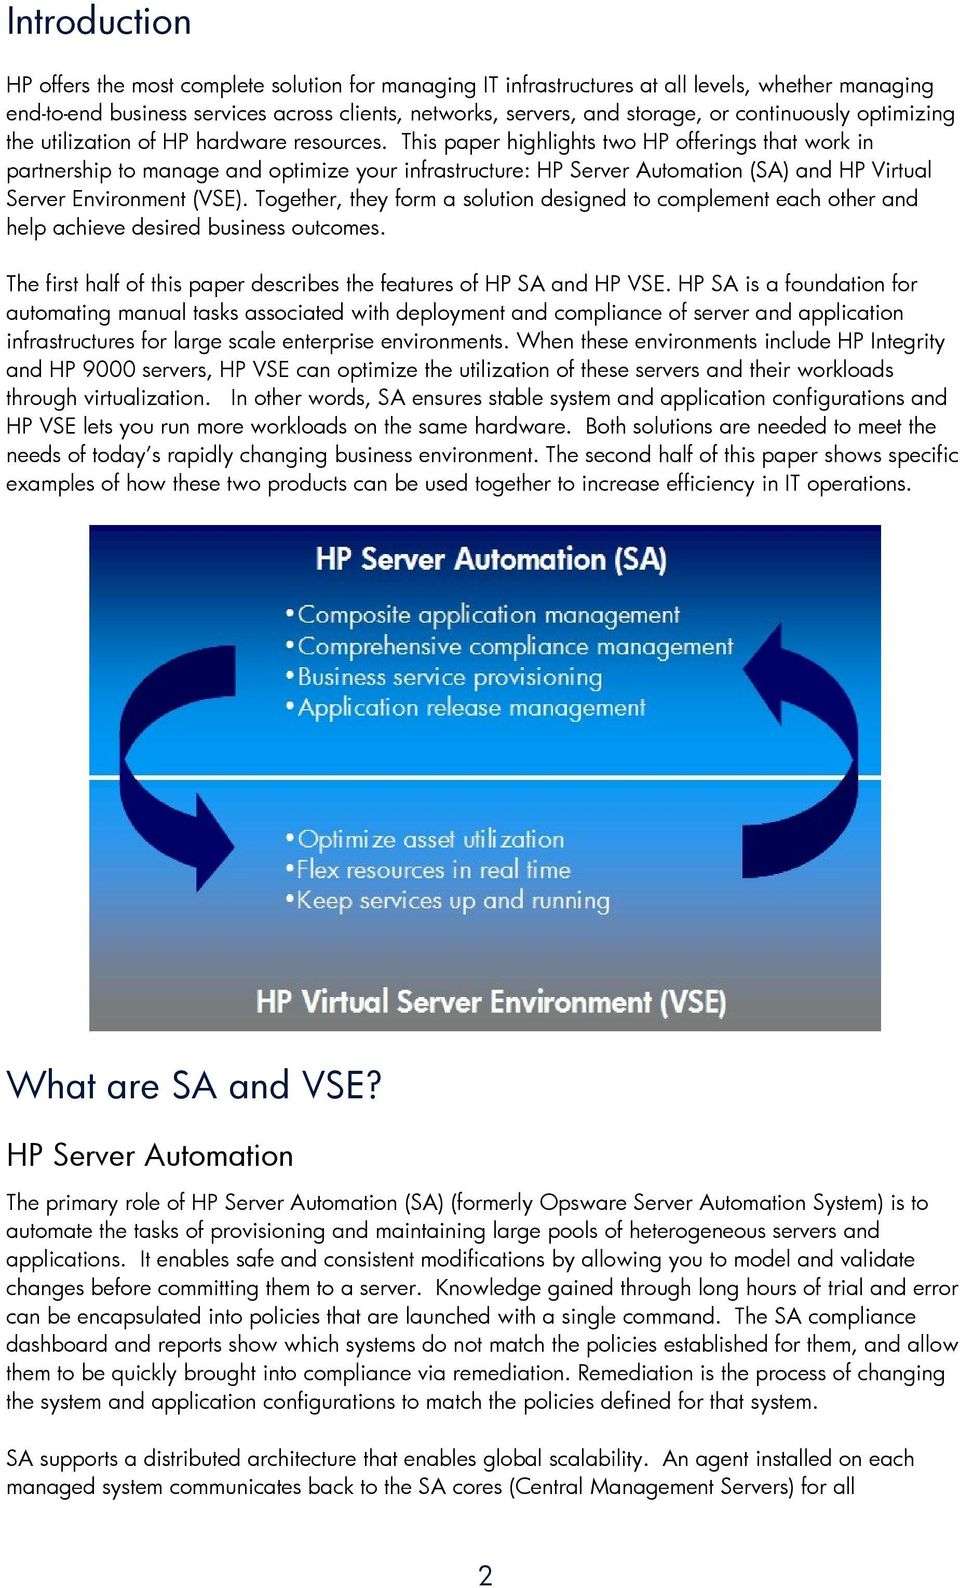 This paper highlights two HP offerings that work in partnership to manage and optimize your infrastructure: HP Server Automation (SA) and HP Virtual Server Environment (VSE).